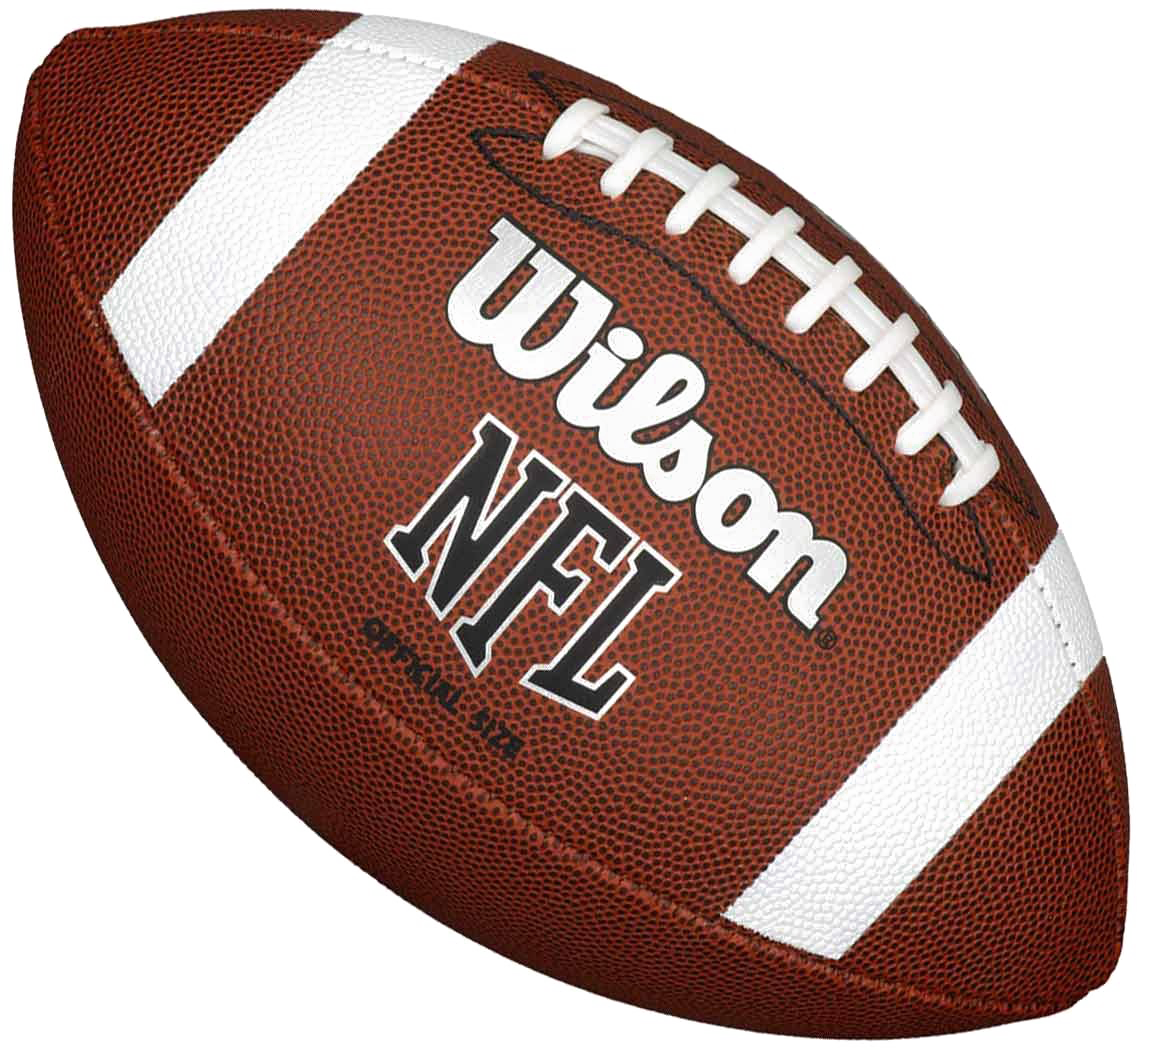 American Football Png & Free American Football.png Transparent Images #2147 - PNGio